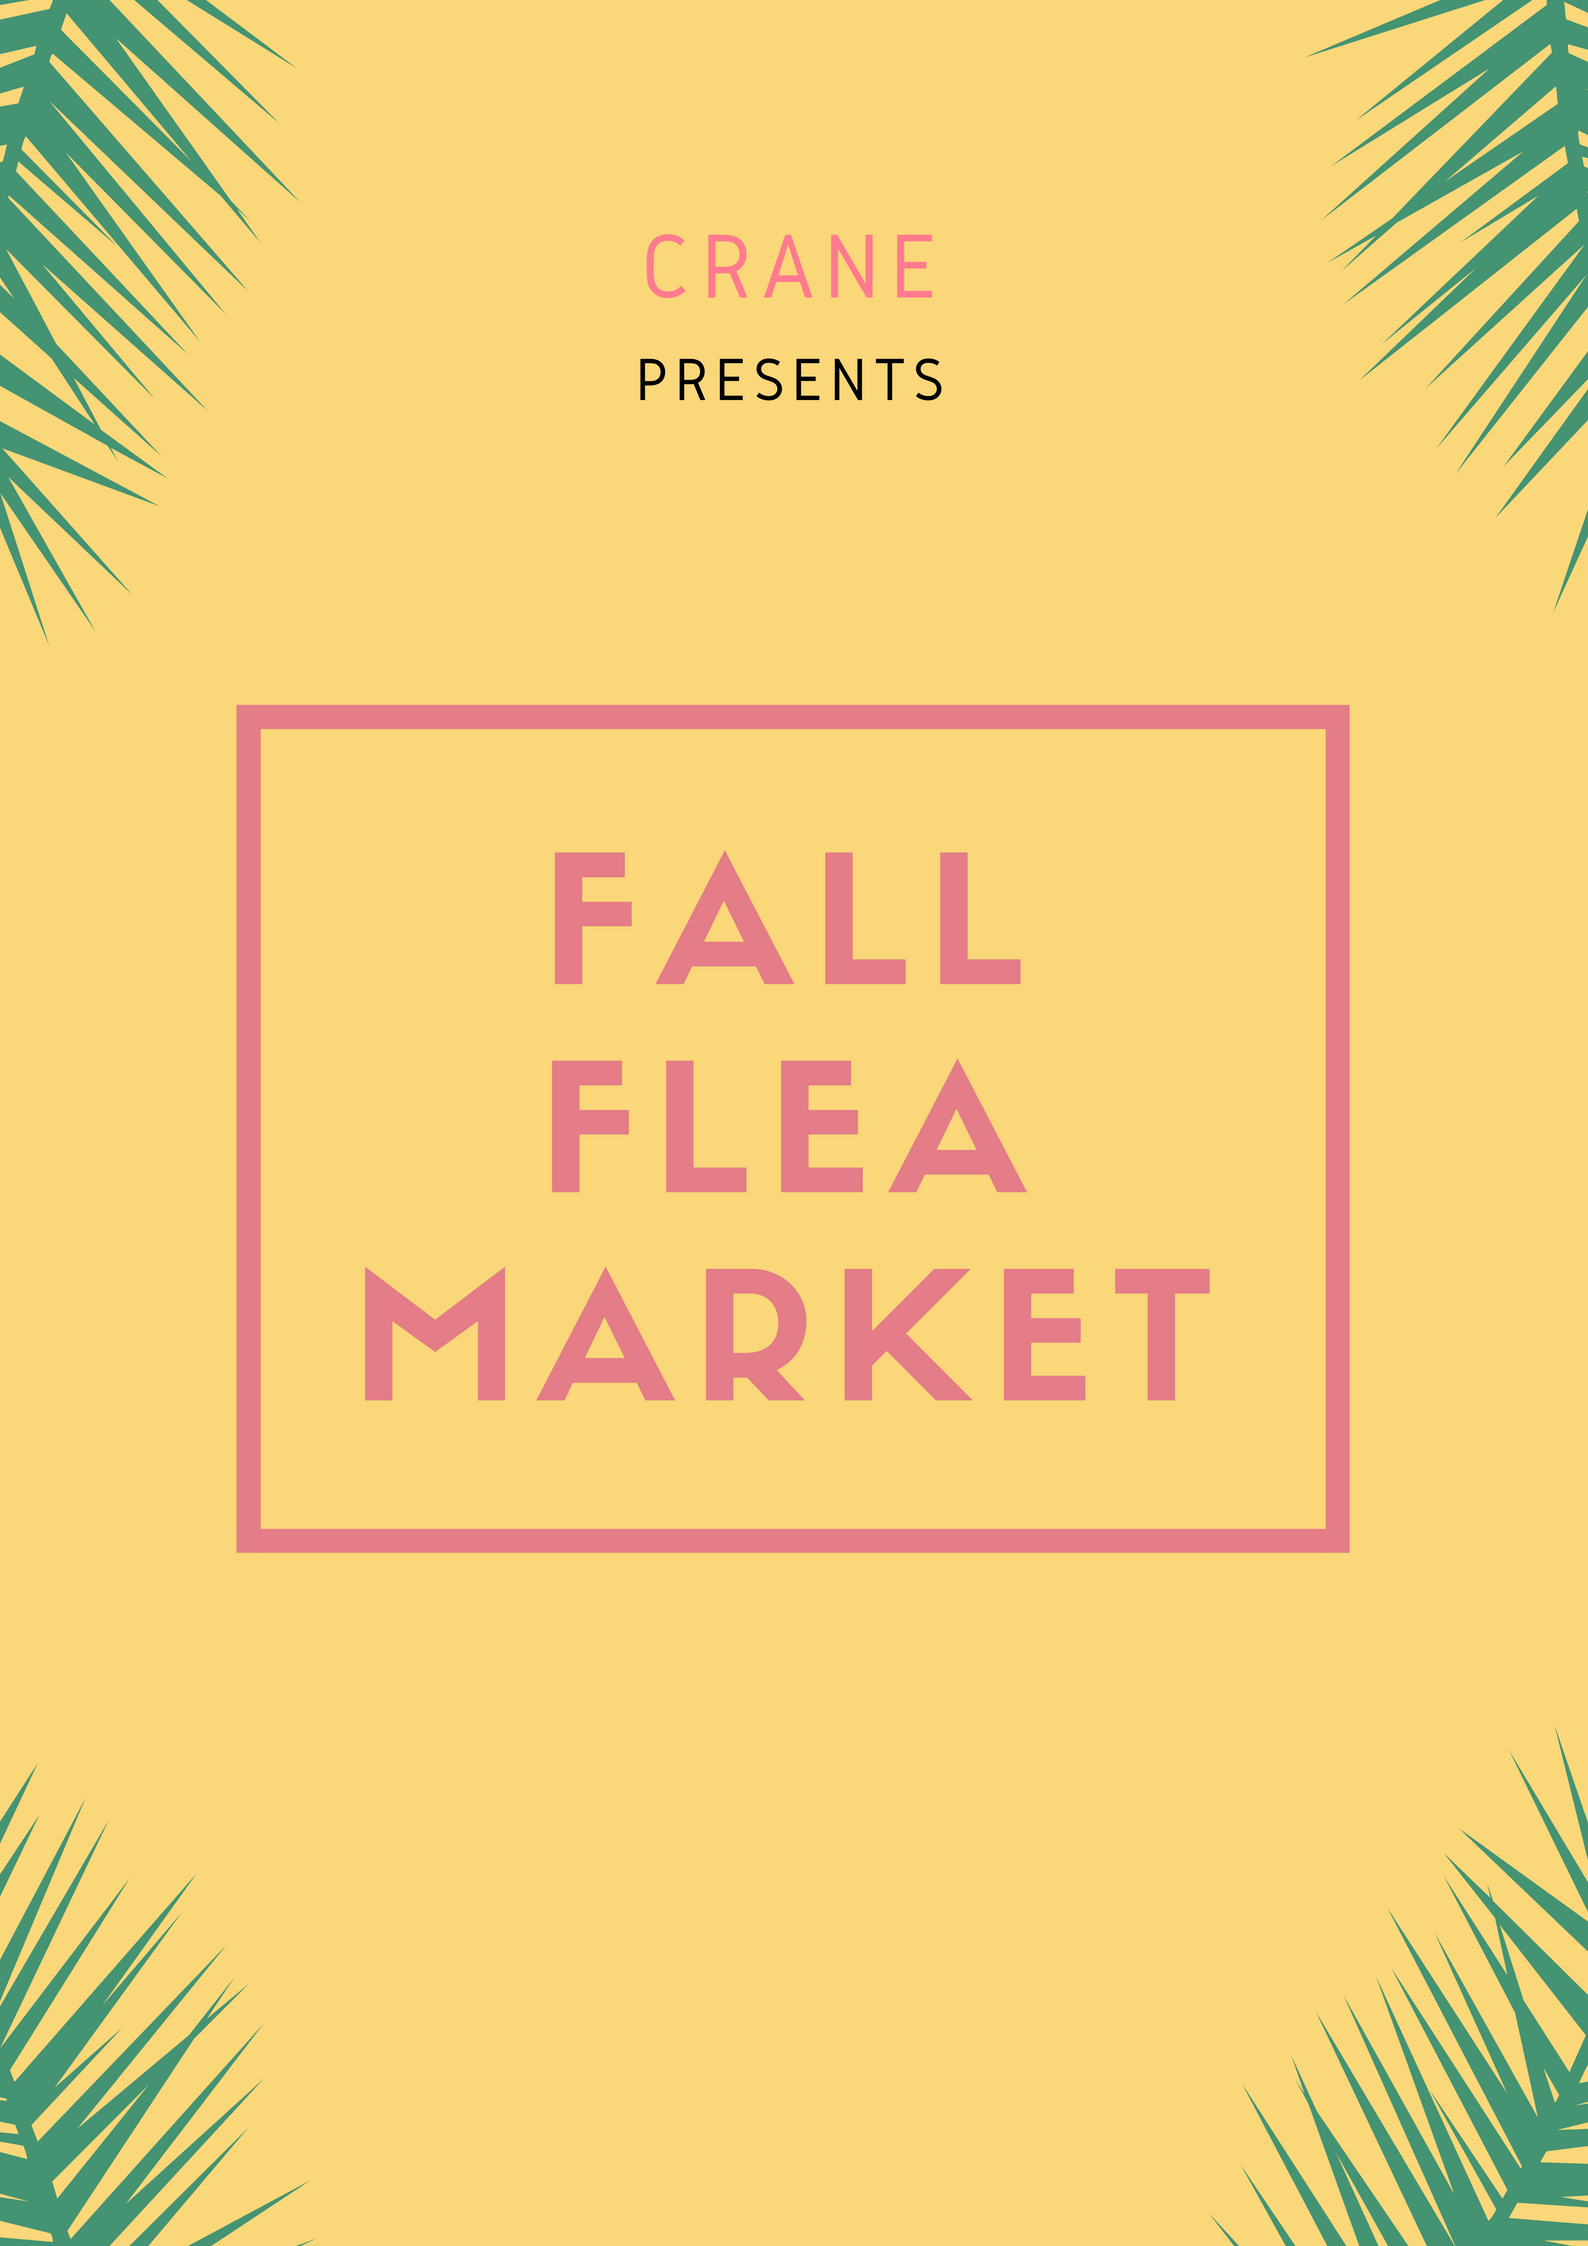 Someone's trash is another one's treasure. Bring your wares to our Flea Market at Crane, and turn them into someone else's treasures. Or maybe even find treasures for yourself from other sellers!